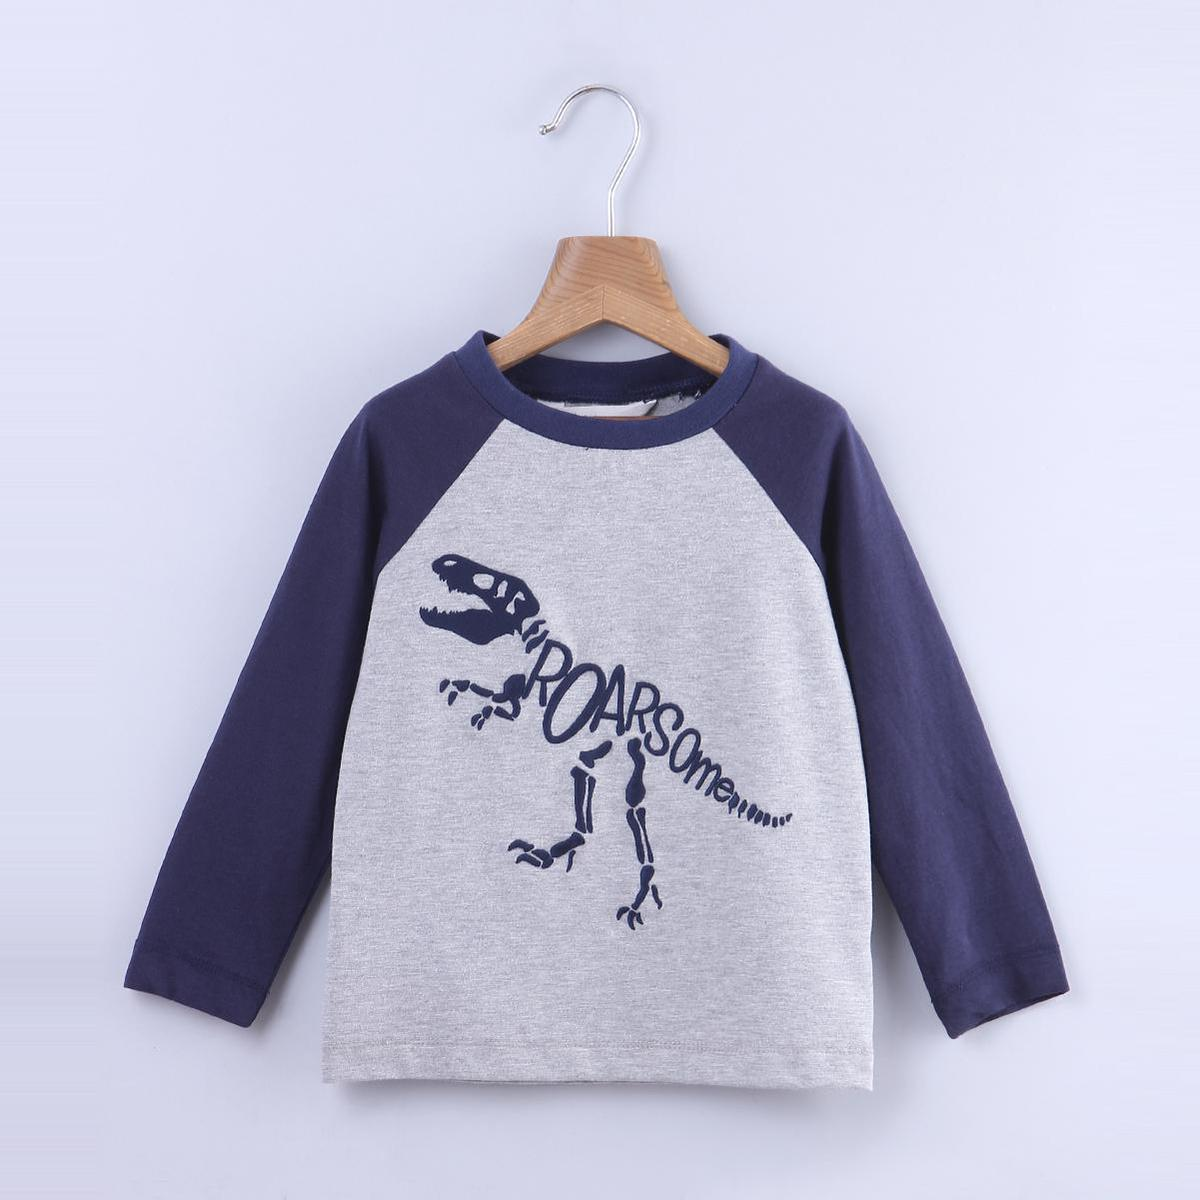 Beebay - Grey Colored Dino Embroidery Raglan Cotton T-shirts For Infants Boys